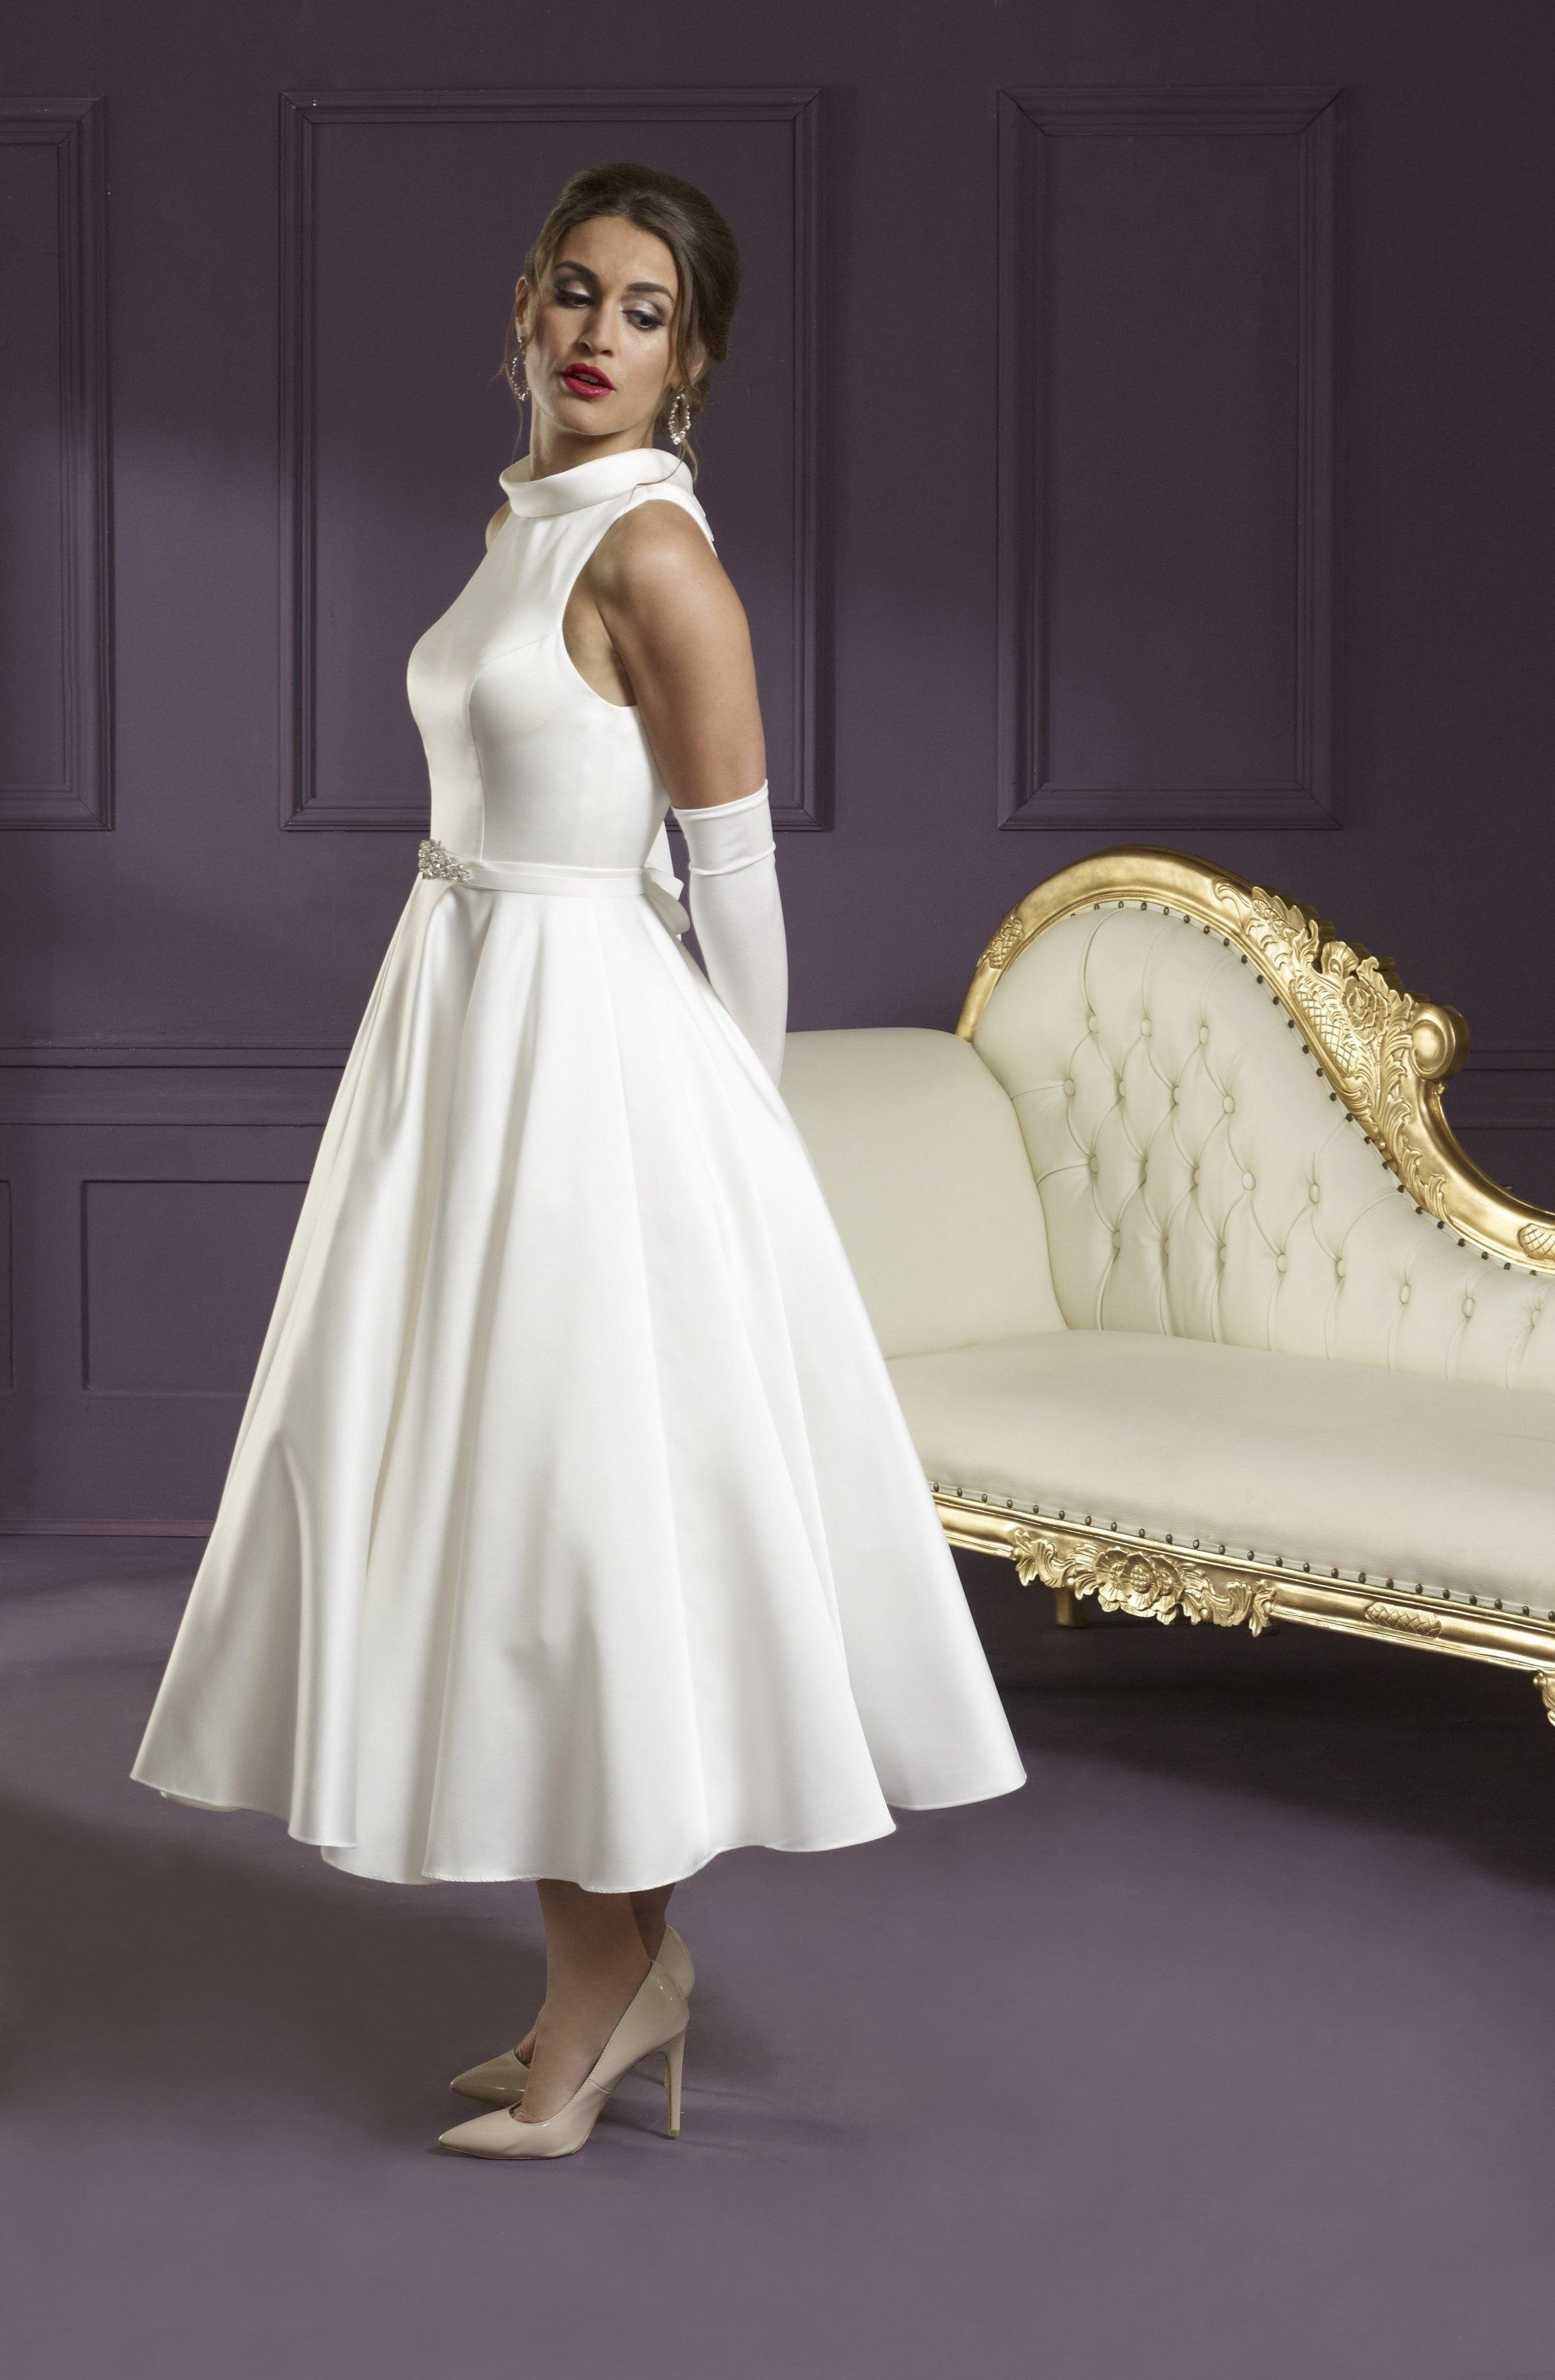 Ivory satin tea length wedding dress with cut out back